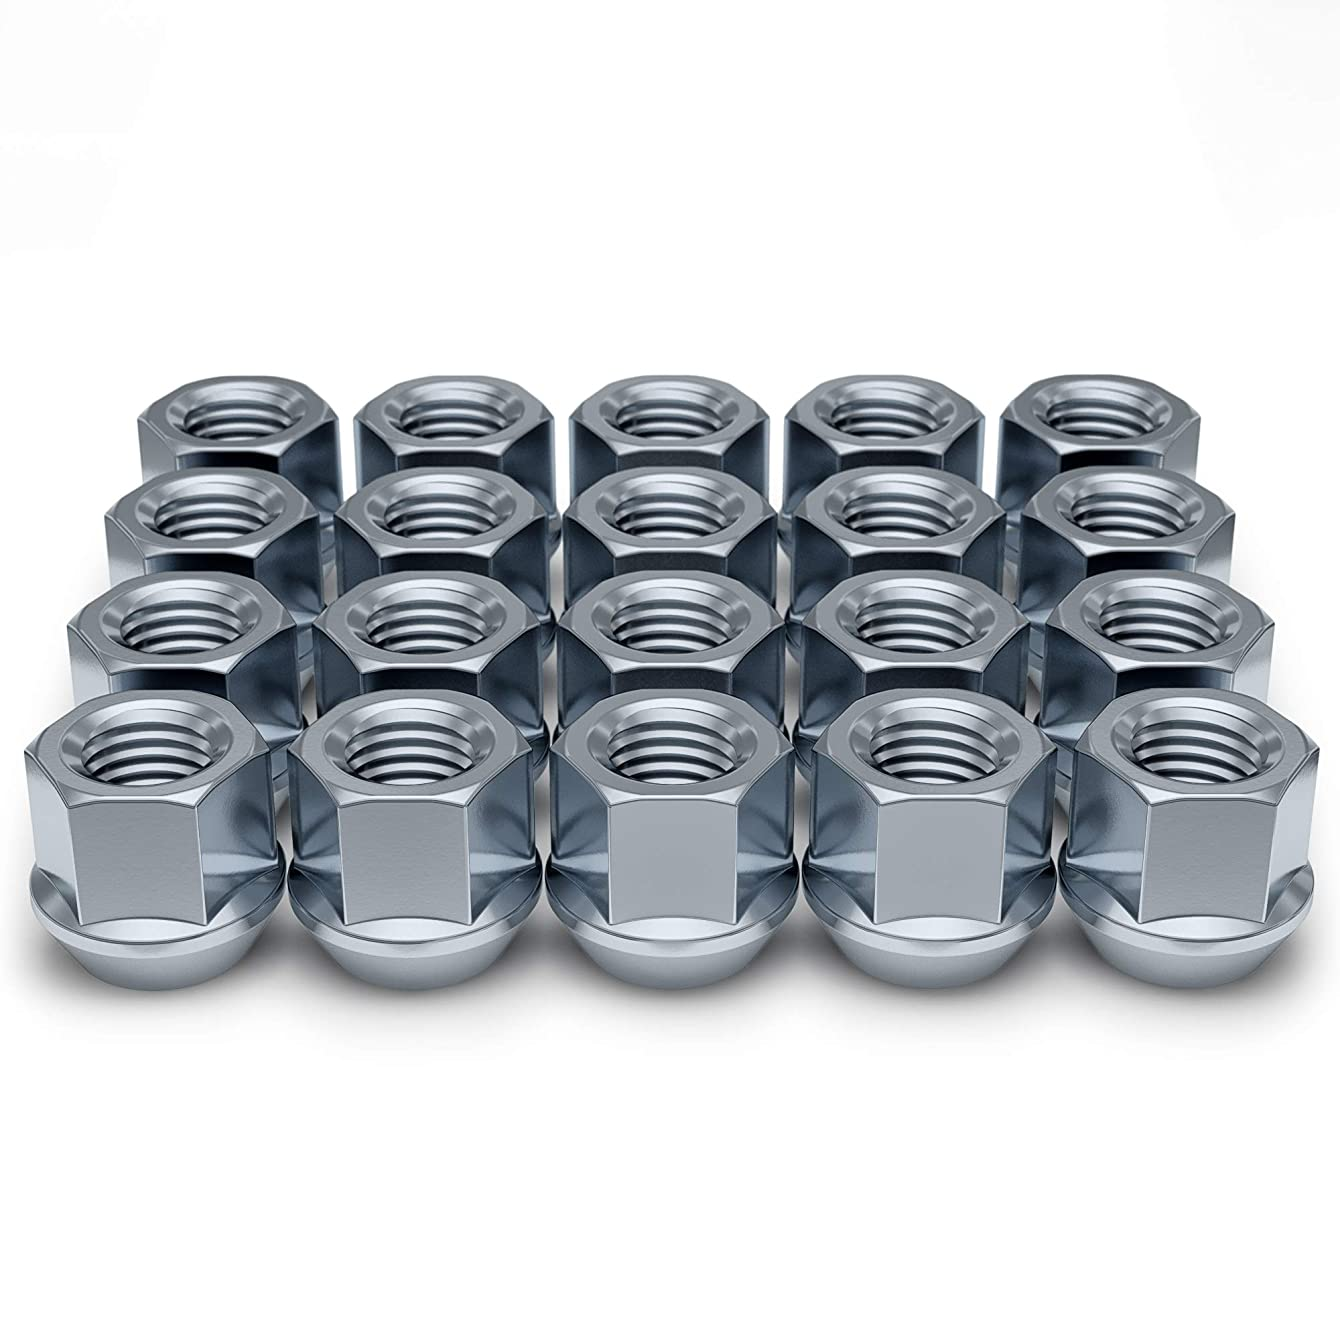 White Knight Wheel Accessories 1309-1S Zinc M14 x 1.50 Open End Bulge Acorn Lug Nut 20 Pack